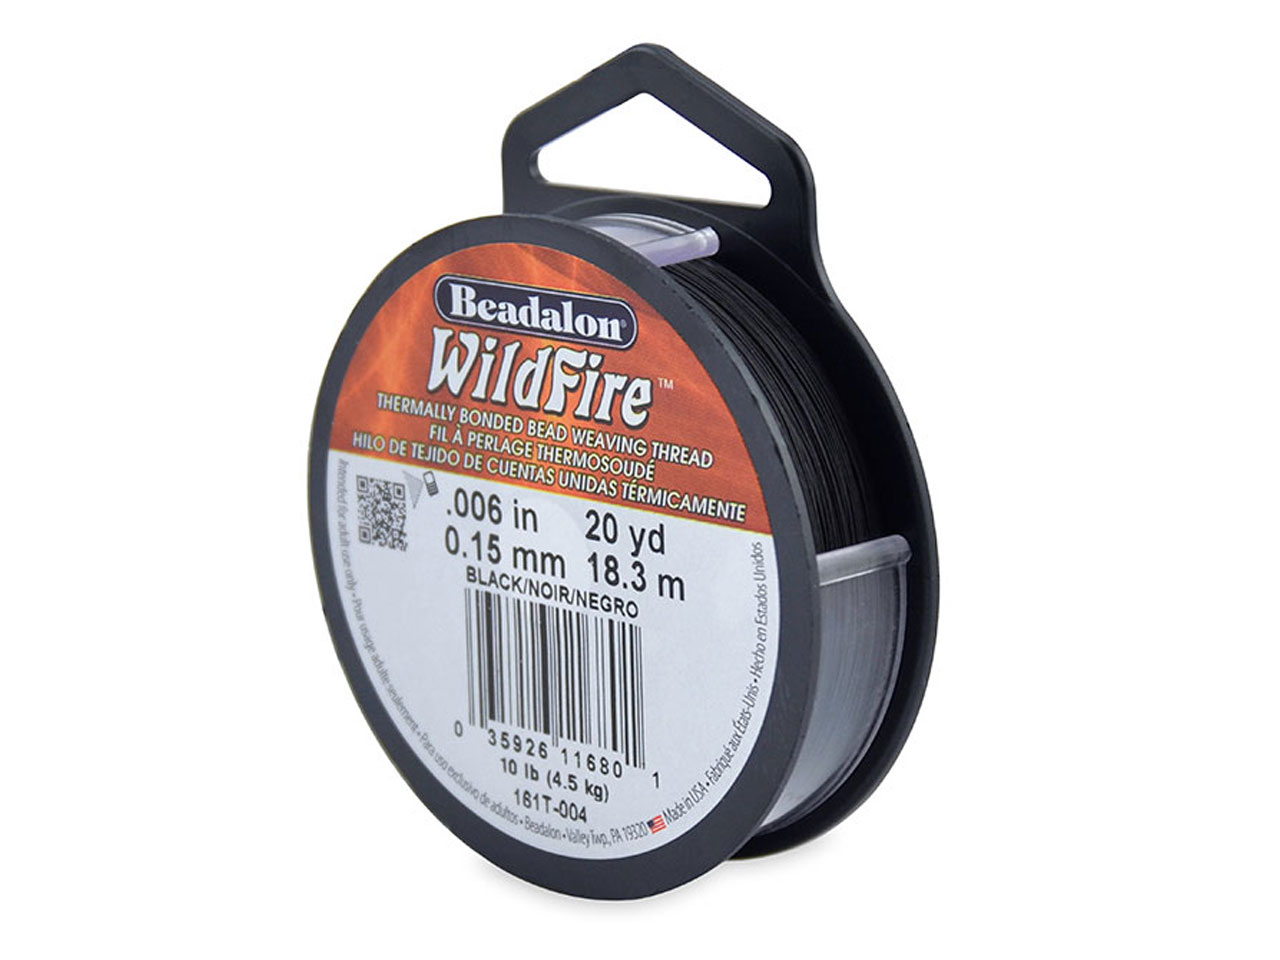 Beadalon Wildfire Thread Black     0.15mm X 18.3m